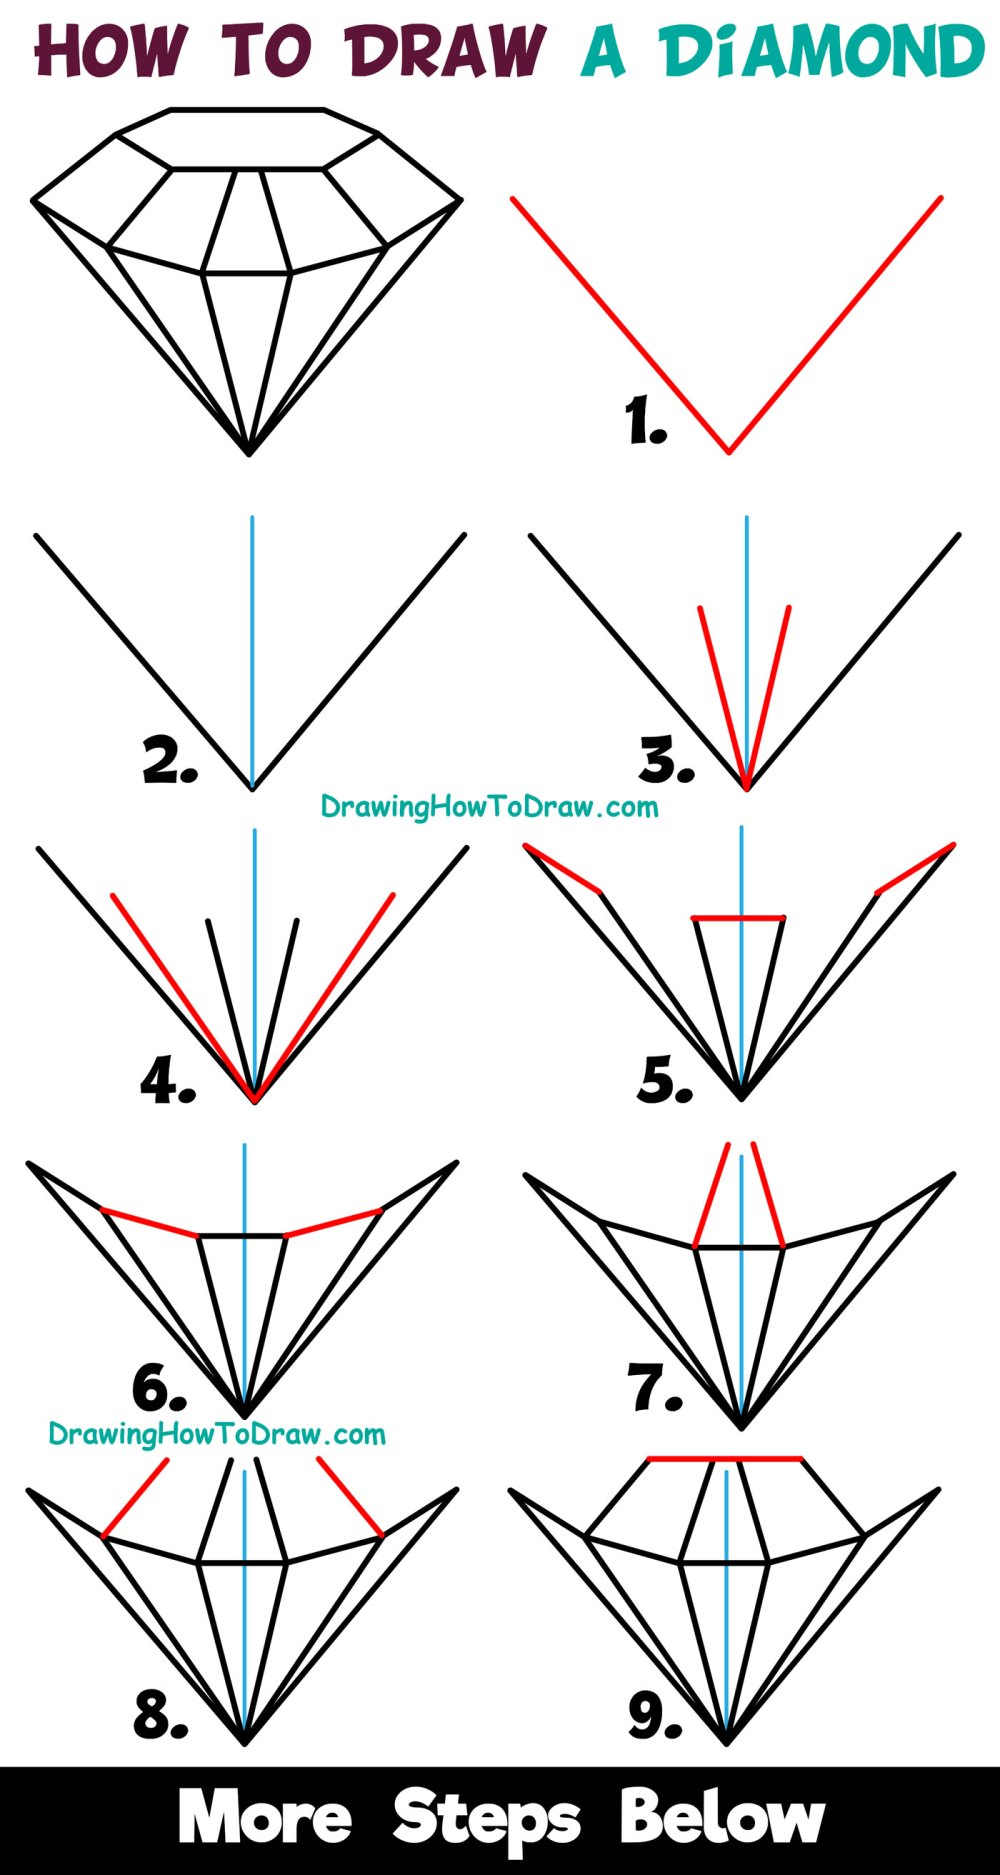 medium resolution of how to draw a diamond easy step by step drawing tutorial for kids beginners